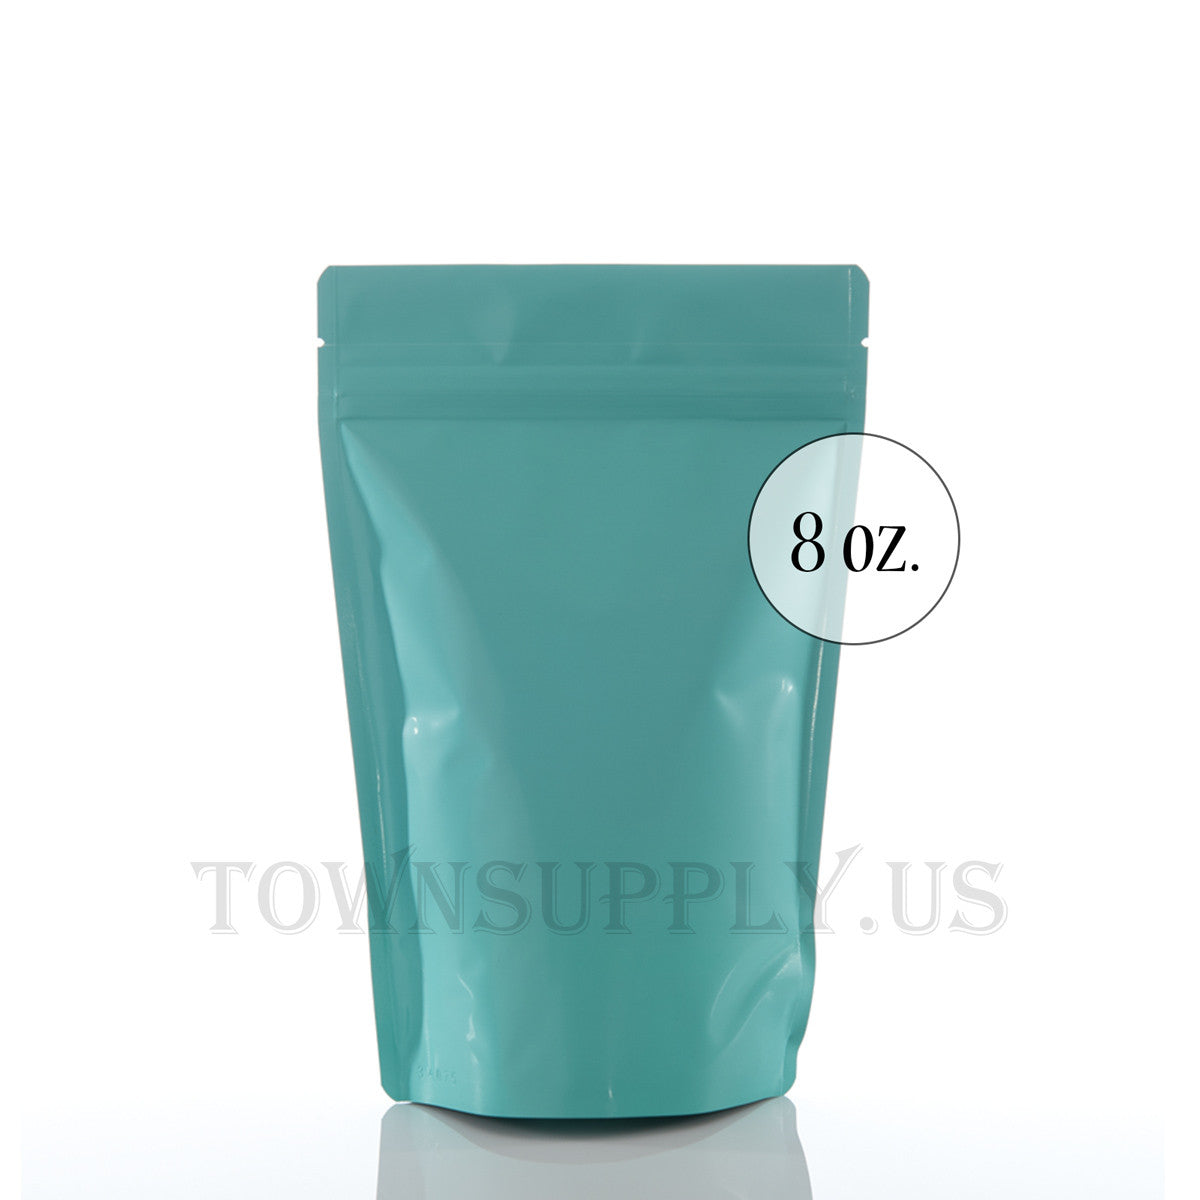 matte turquoise resealable stand up pouch, 8 oz. bags - Town Supply